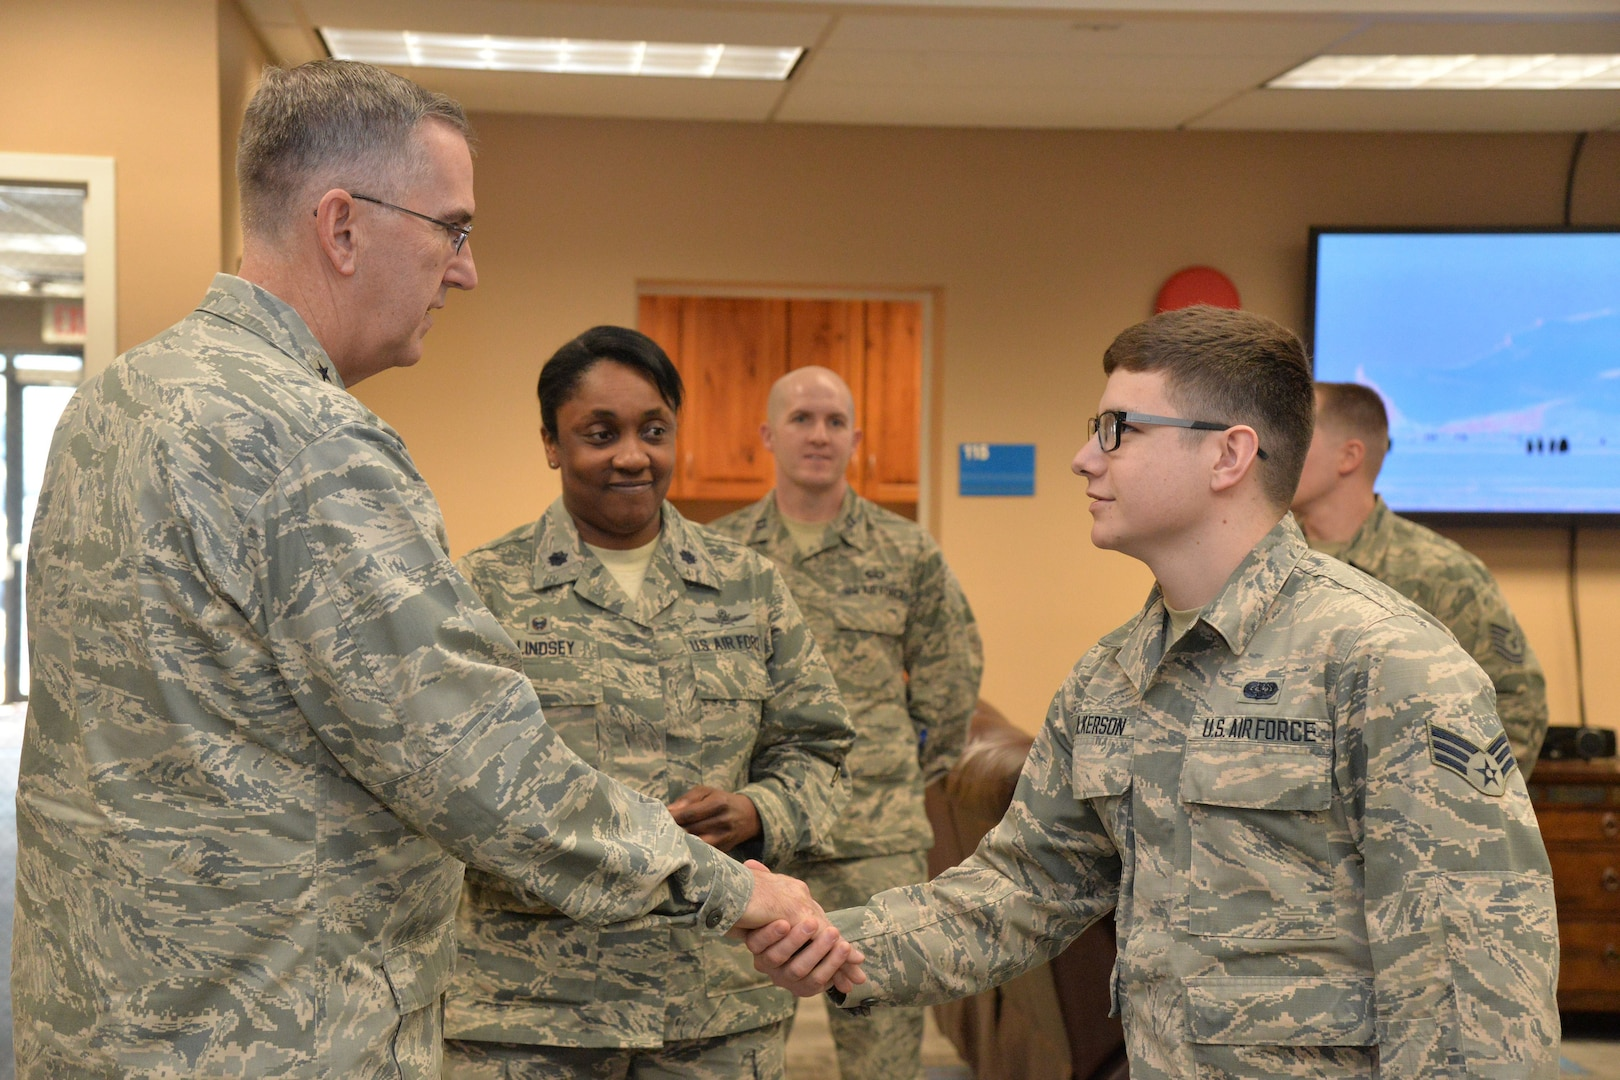 U.S. Air Force Gen. John Hyten, commander of U.S. Strategic Command (USSTRATCOM); shakes hands with Senior Airman Landon Wilkerson, 341st Communications Squadron, at the Malmstrom Air Force Base resiliency center in Montana, Jan. 16, 2018.